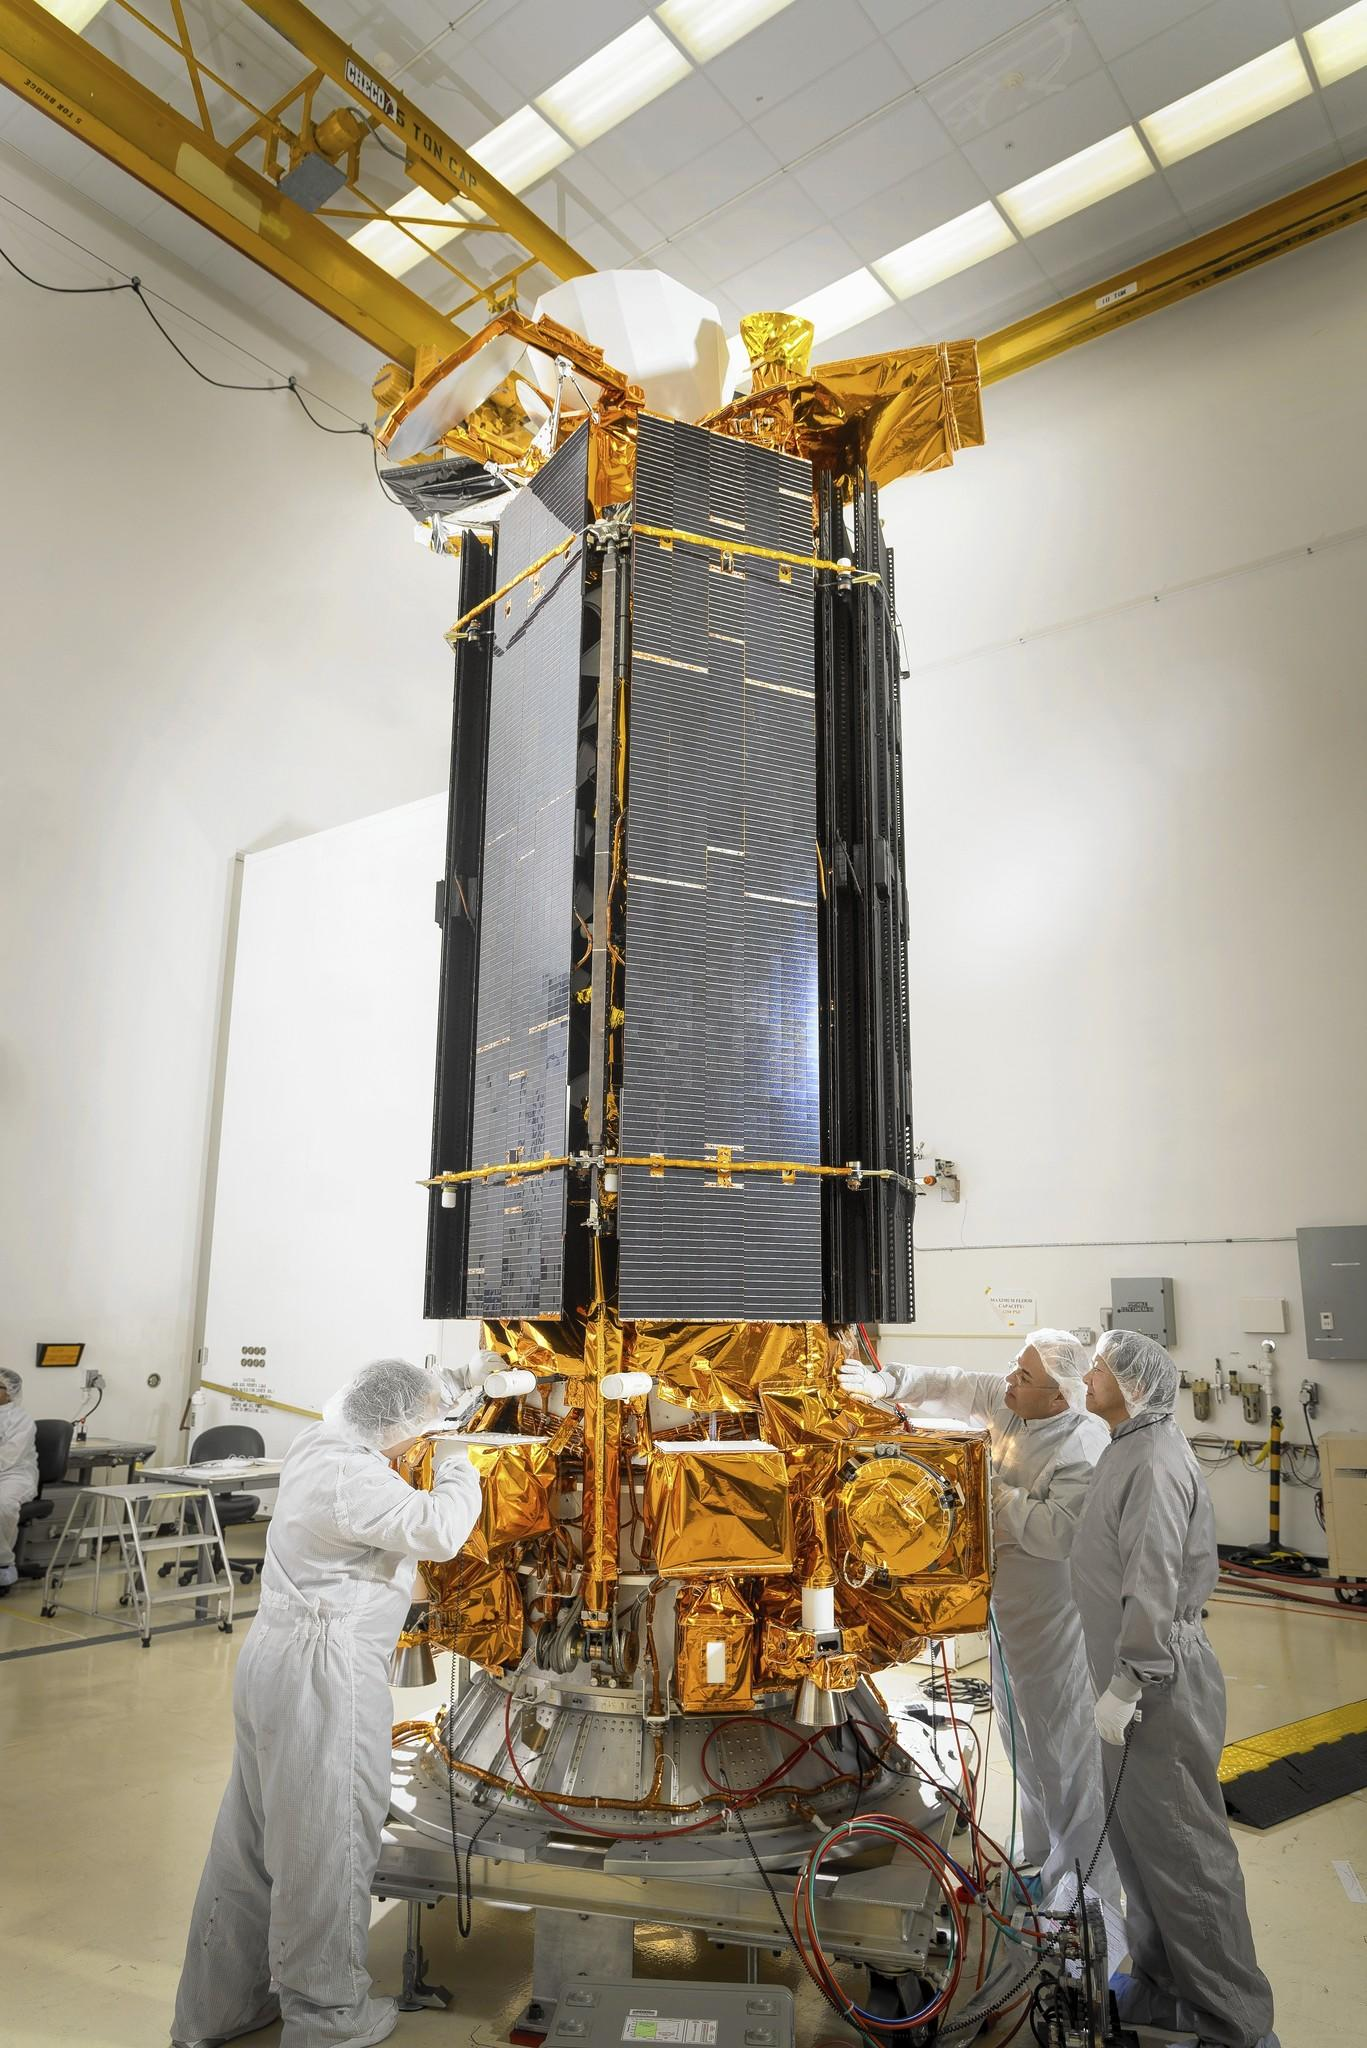 A weather satellite, part of the Defense Meteorological Satellite Program, is prepared for launch at Vandenberg Air Force Base near Lompoc, Calif.